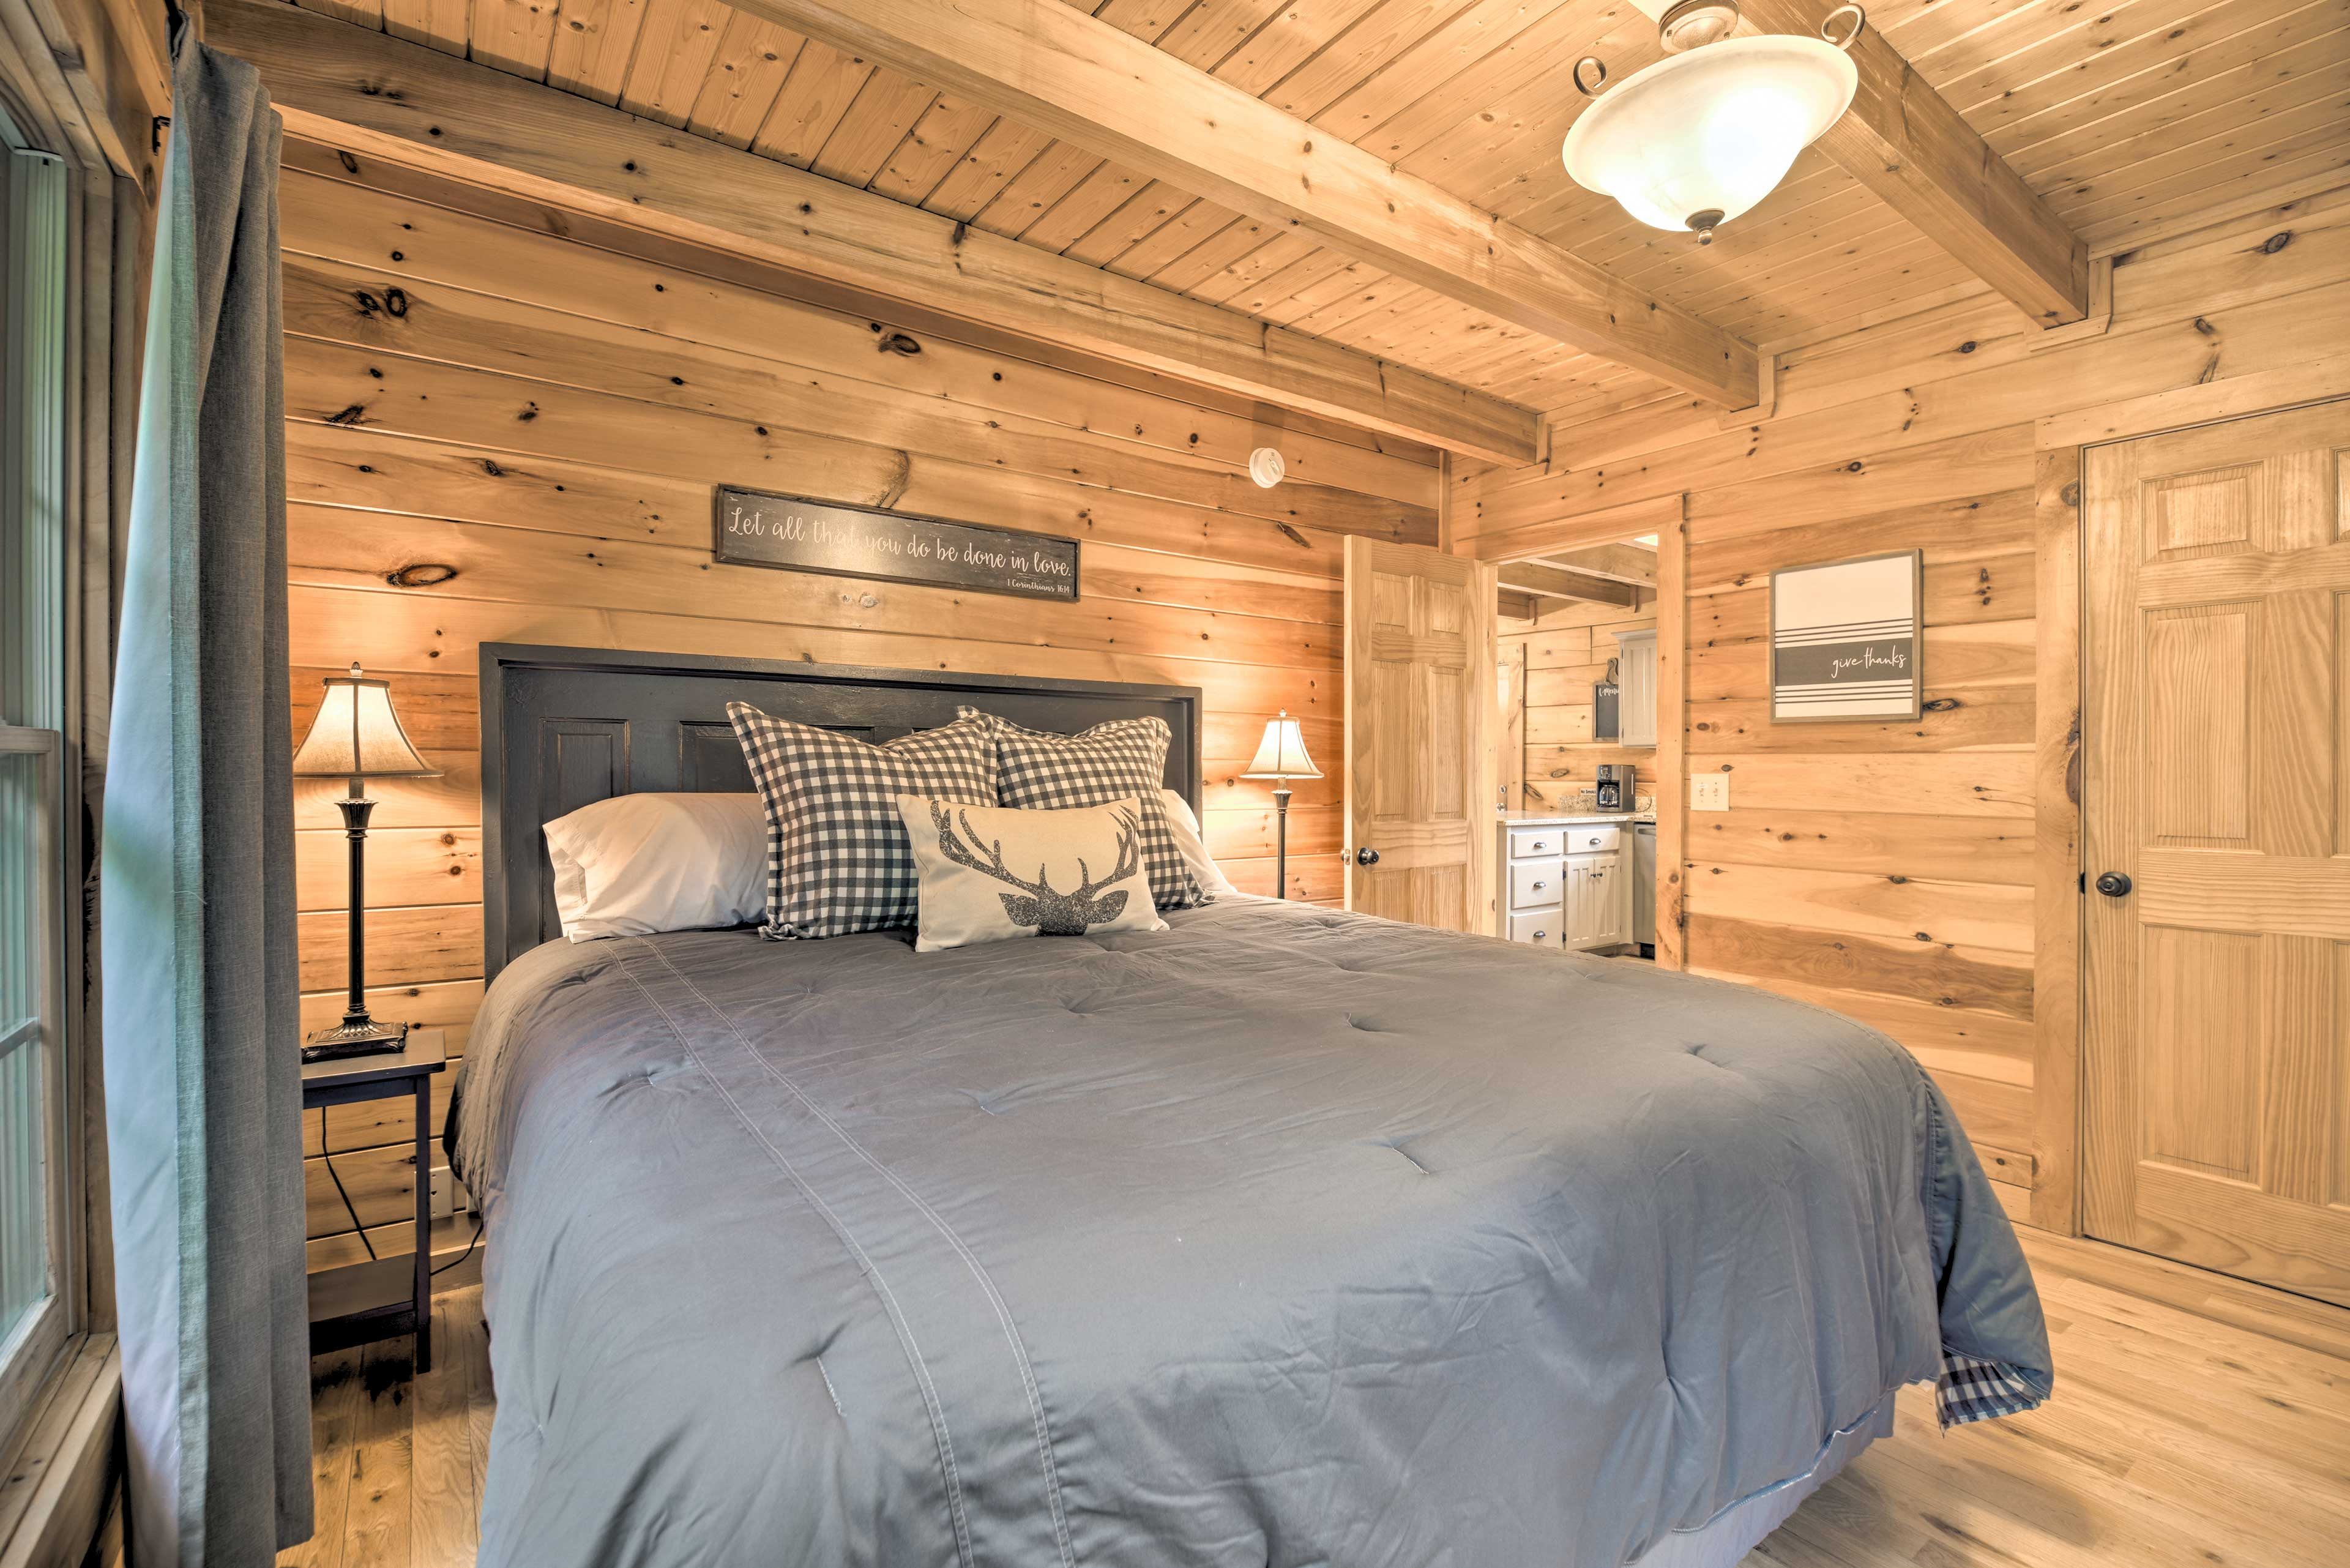 Retreat to the bedroom to rest.